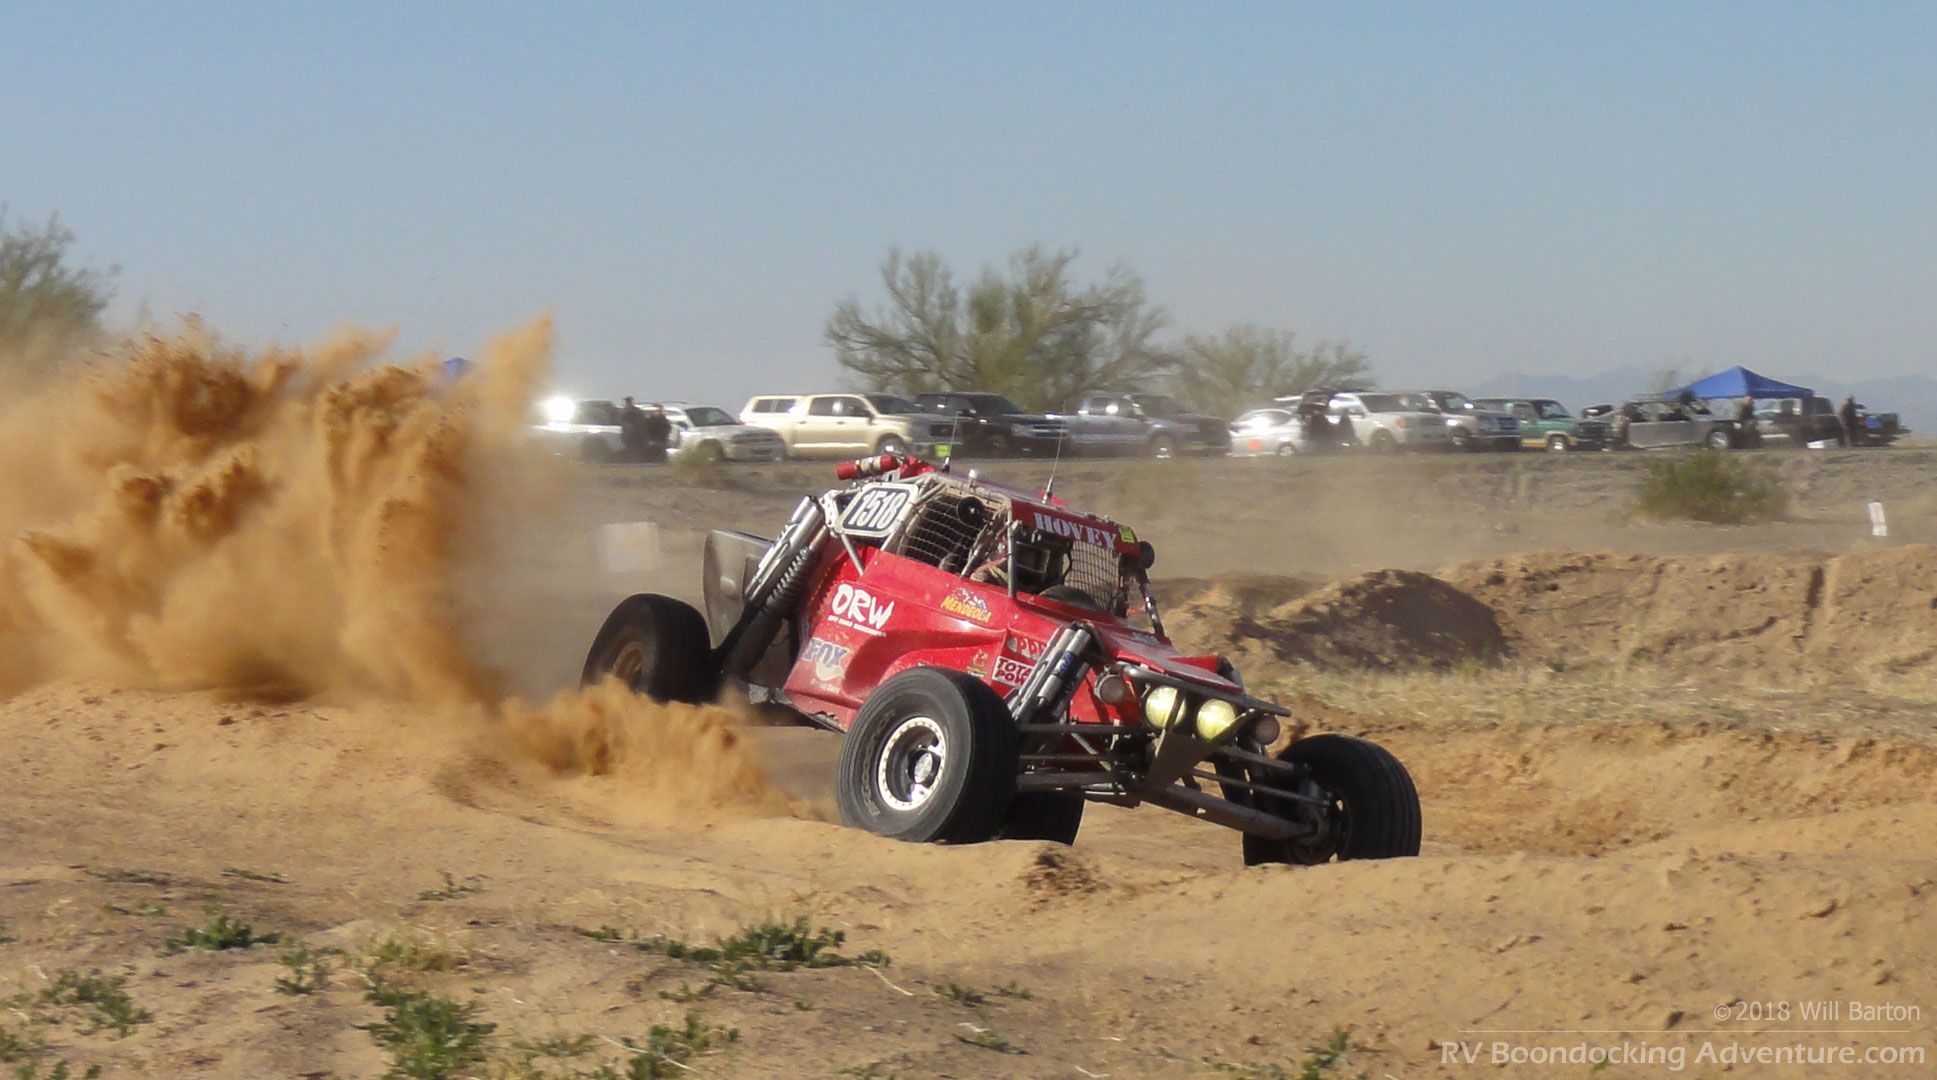 An offroad buggy kicks up some dust at the Parker 425 Off